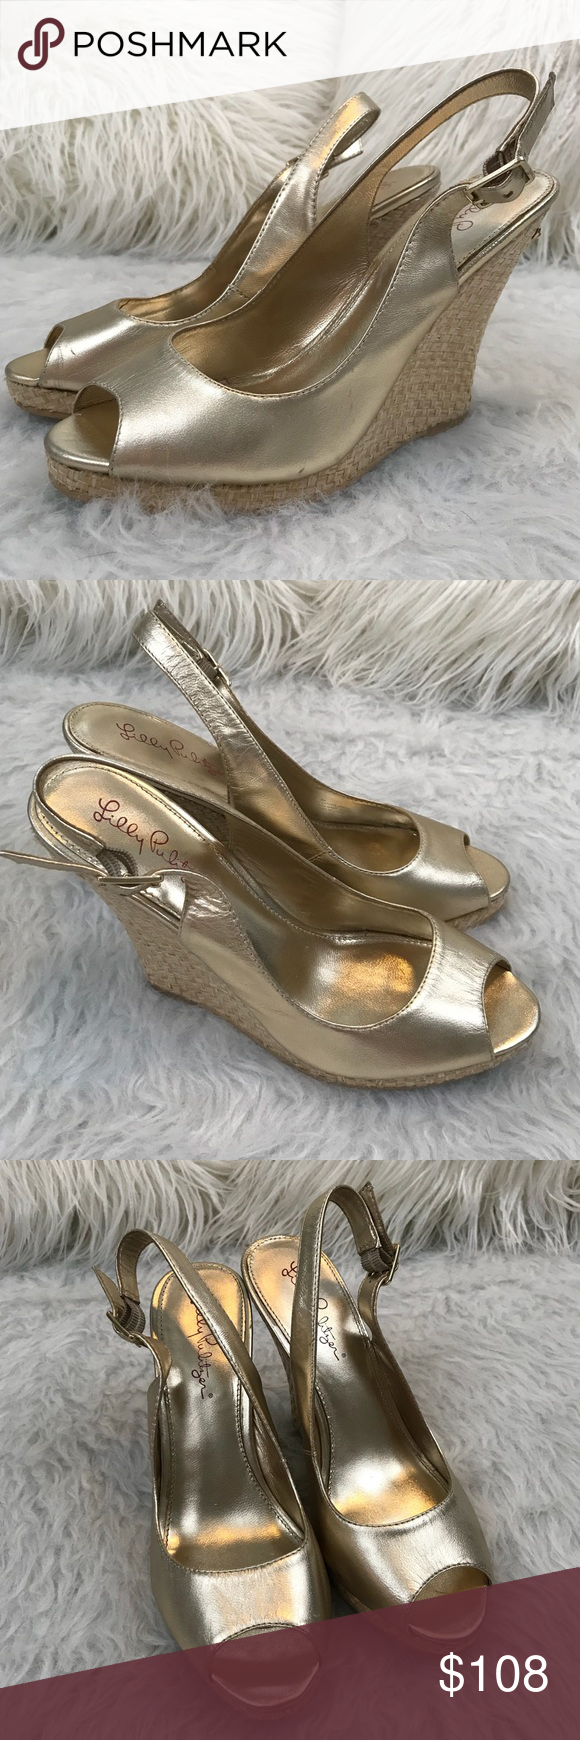 ed55d368924 Lilly Pulitzer Kristin Leather Wedge These tumbled leather gold ...